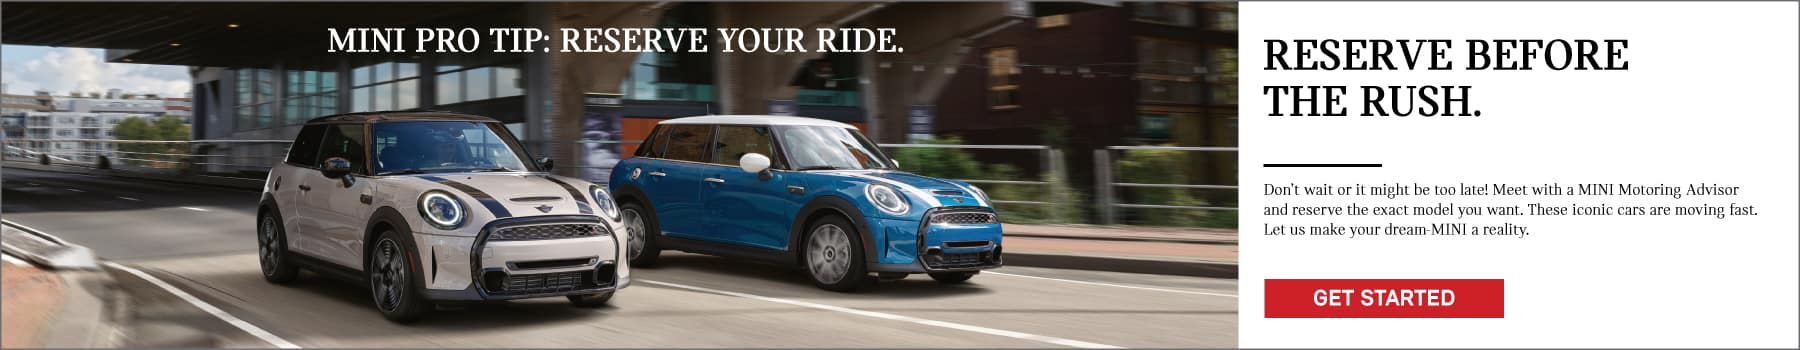 MINI pro tip: reserve your ride. Reserve before the rush. Dont wait or it might be too late! Meet with a MINI motoring advisor and reserve the exact model you want. These iconic cars are moving fast. Let us make your dream-MINI a reality. Click to get started. Image shows two 2022 MINI vehicles driving down the street.